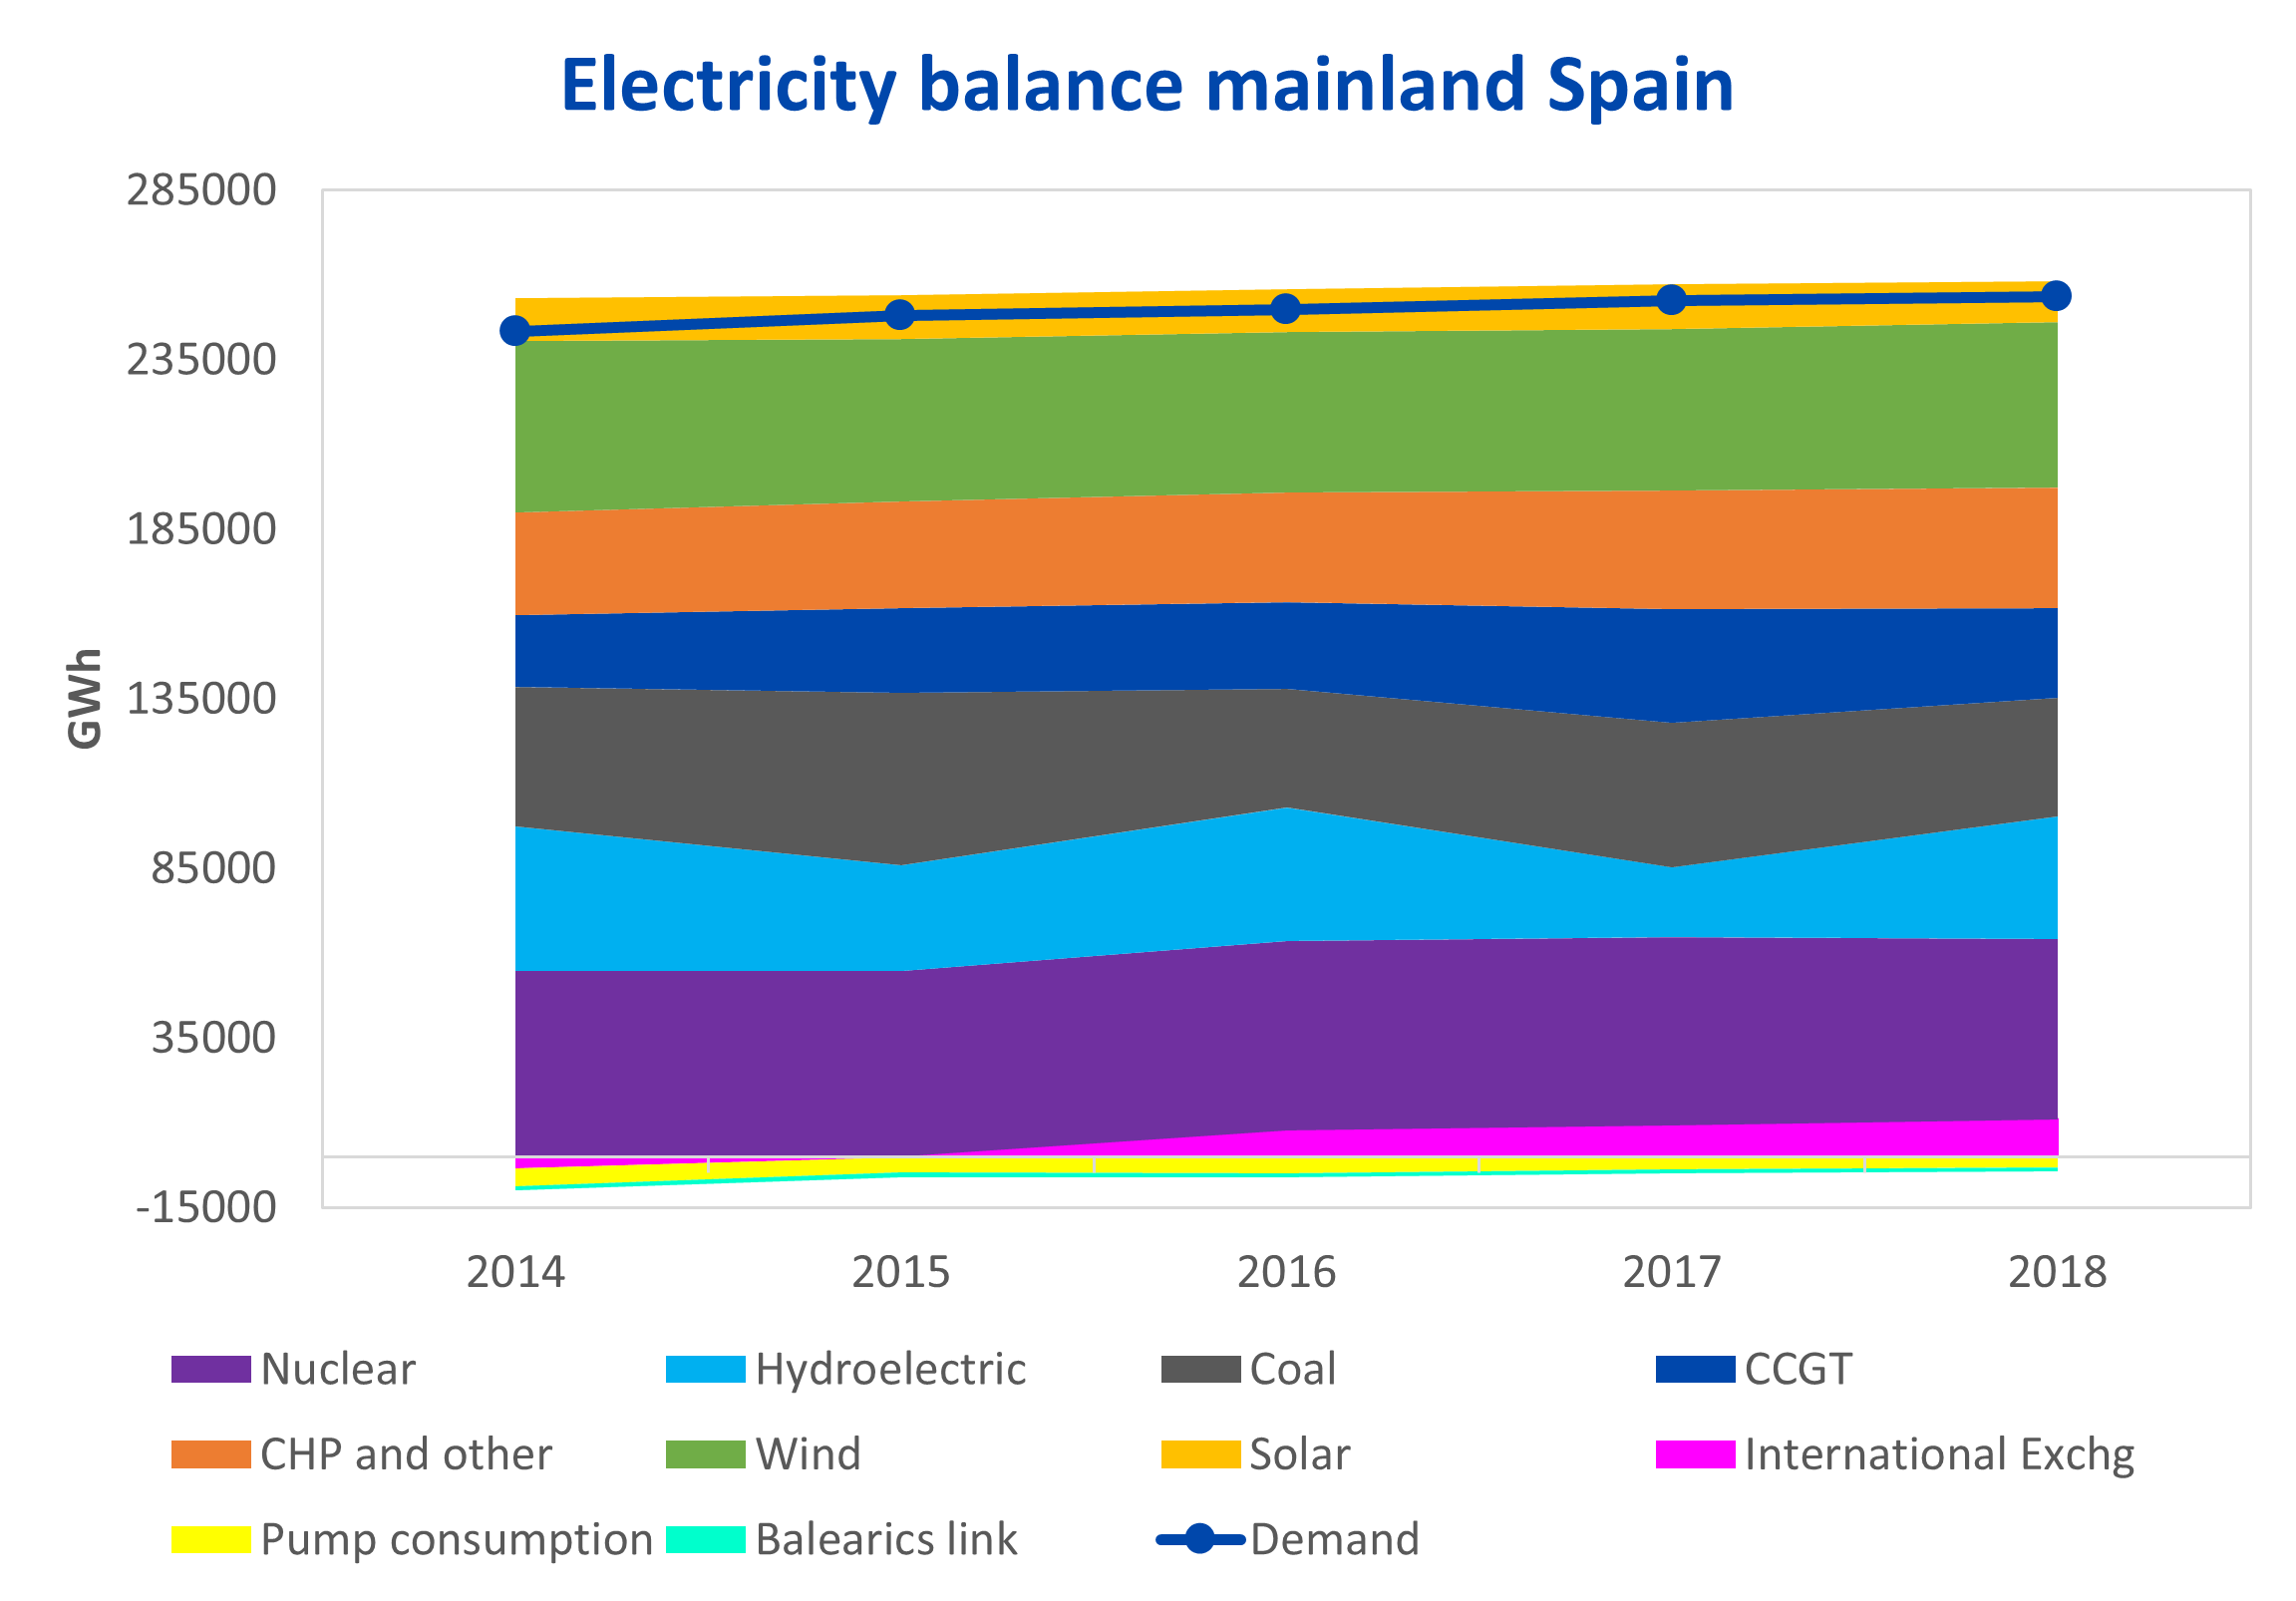 AleaSoft - Balance mainland Spain